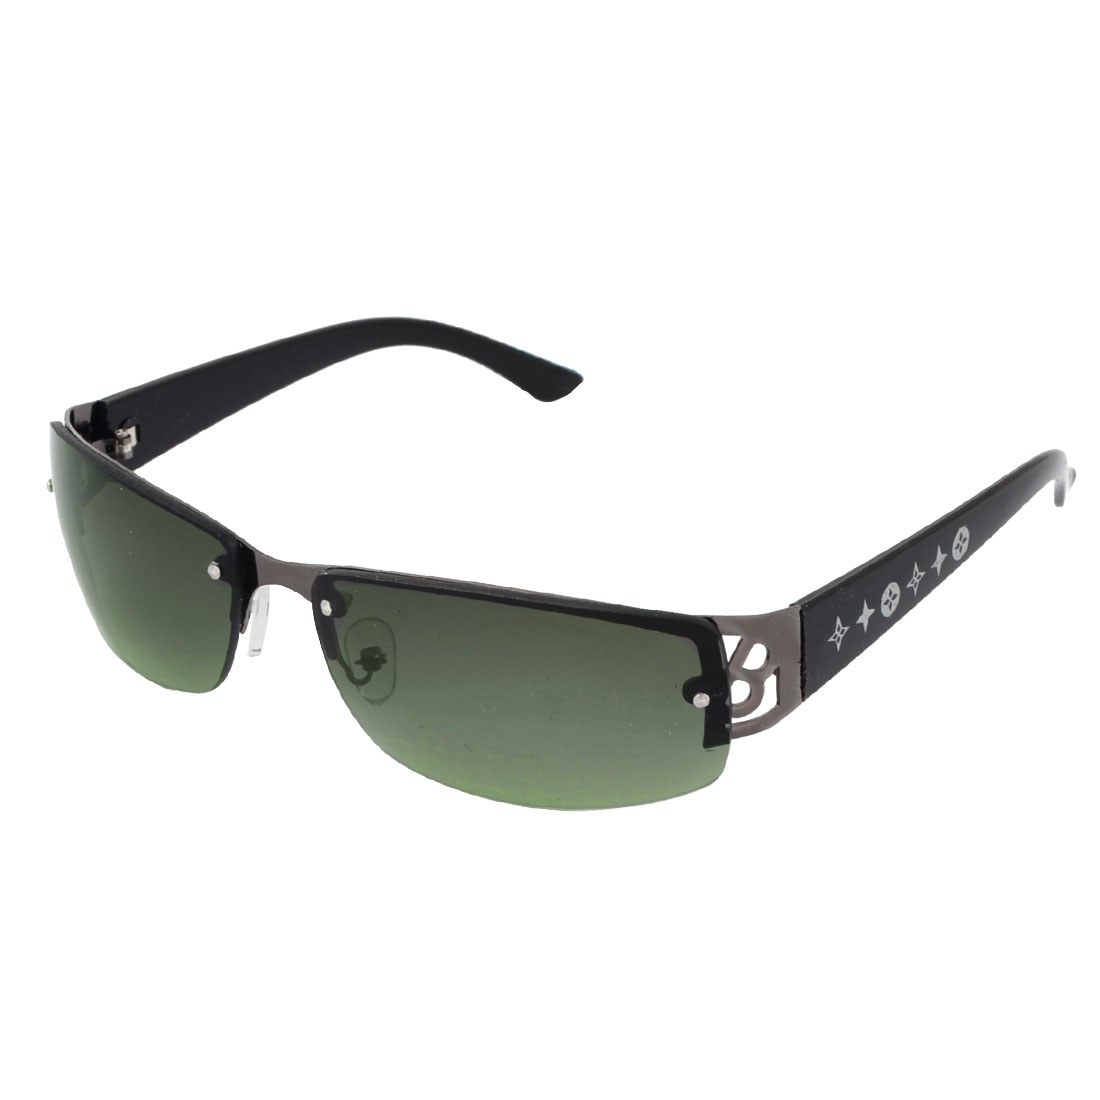 Men Women Single Bridge Green Lens Half Rimless Plastic Arms Travel Protective Eyeglasses Sunglasses